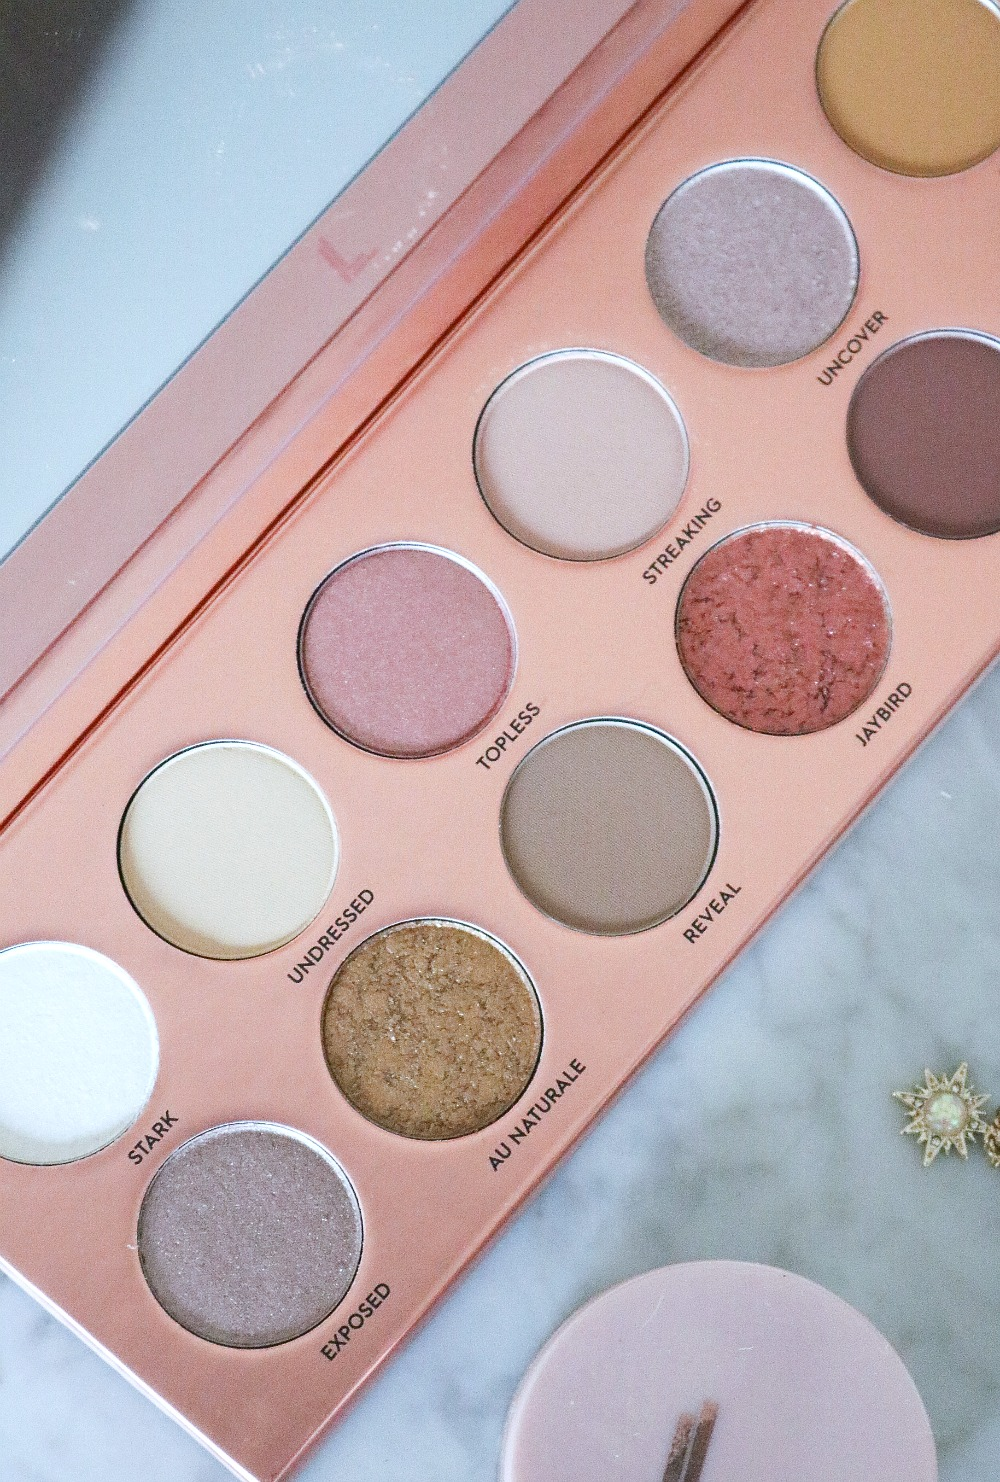 Laura Lee Nudie Patootie Eyeshadow Palette Review I Blogmas 2019 I Dreaminlace.com #Makeup #CrueltyFree